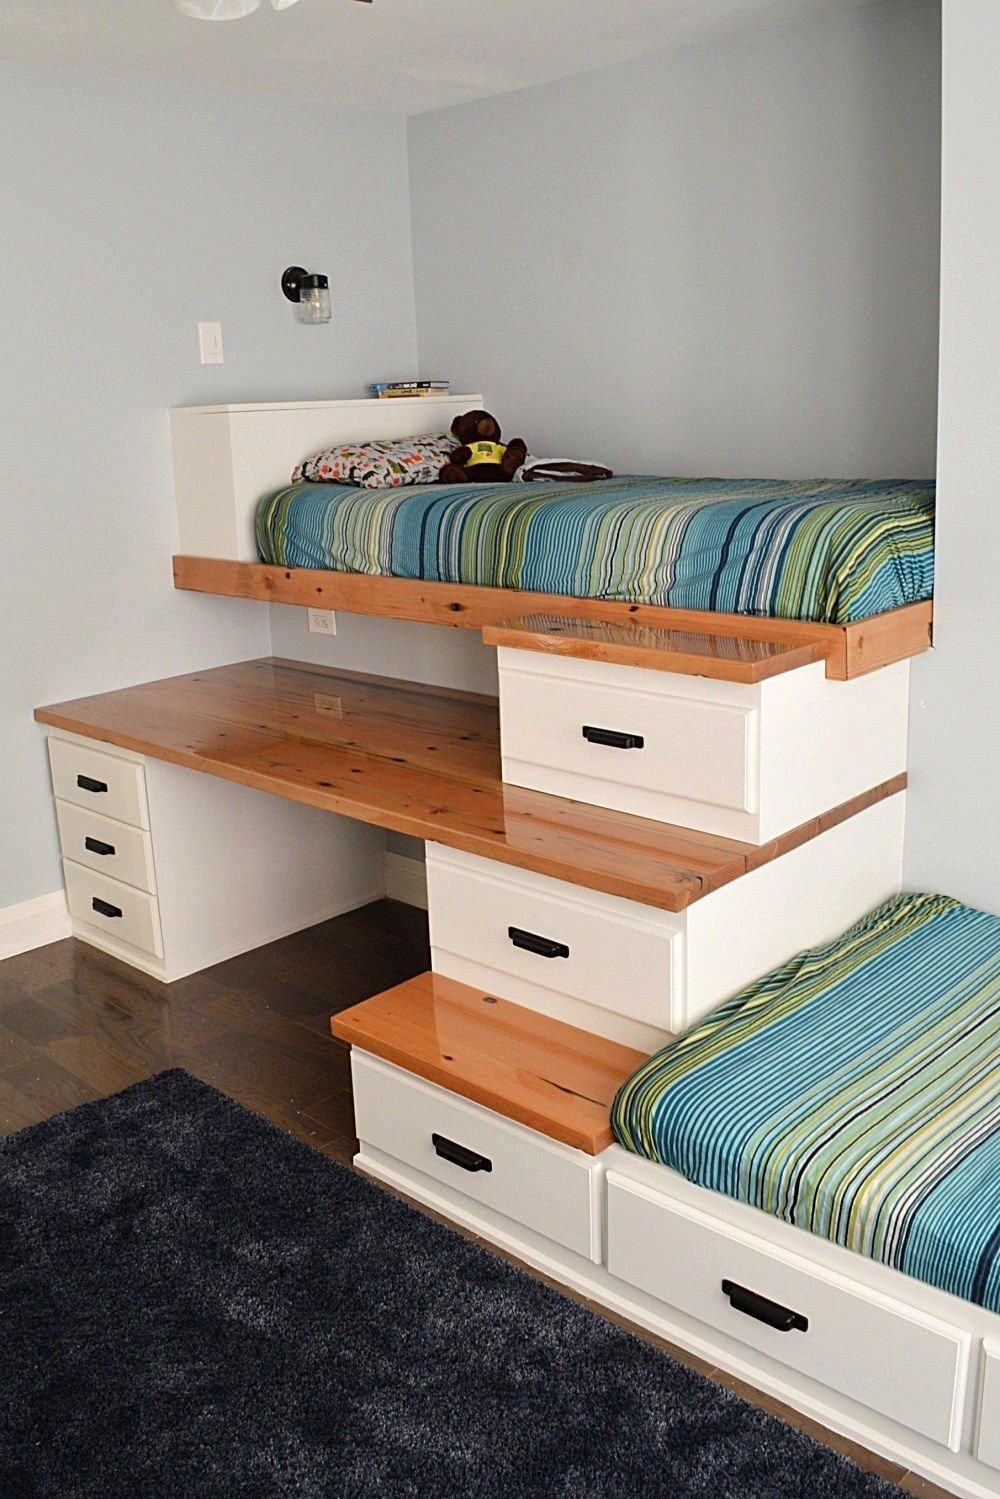 31 Lovely Bedroom Storage Ideas For Small Spaces 28 Best Inspiration Ideas That You Want In 2020 Room Ideas Bedroom Small Space Storage Bedroom Storage Furniture Bedroom